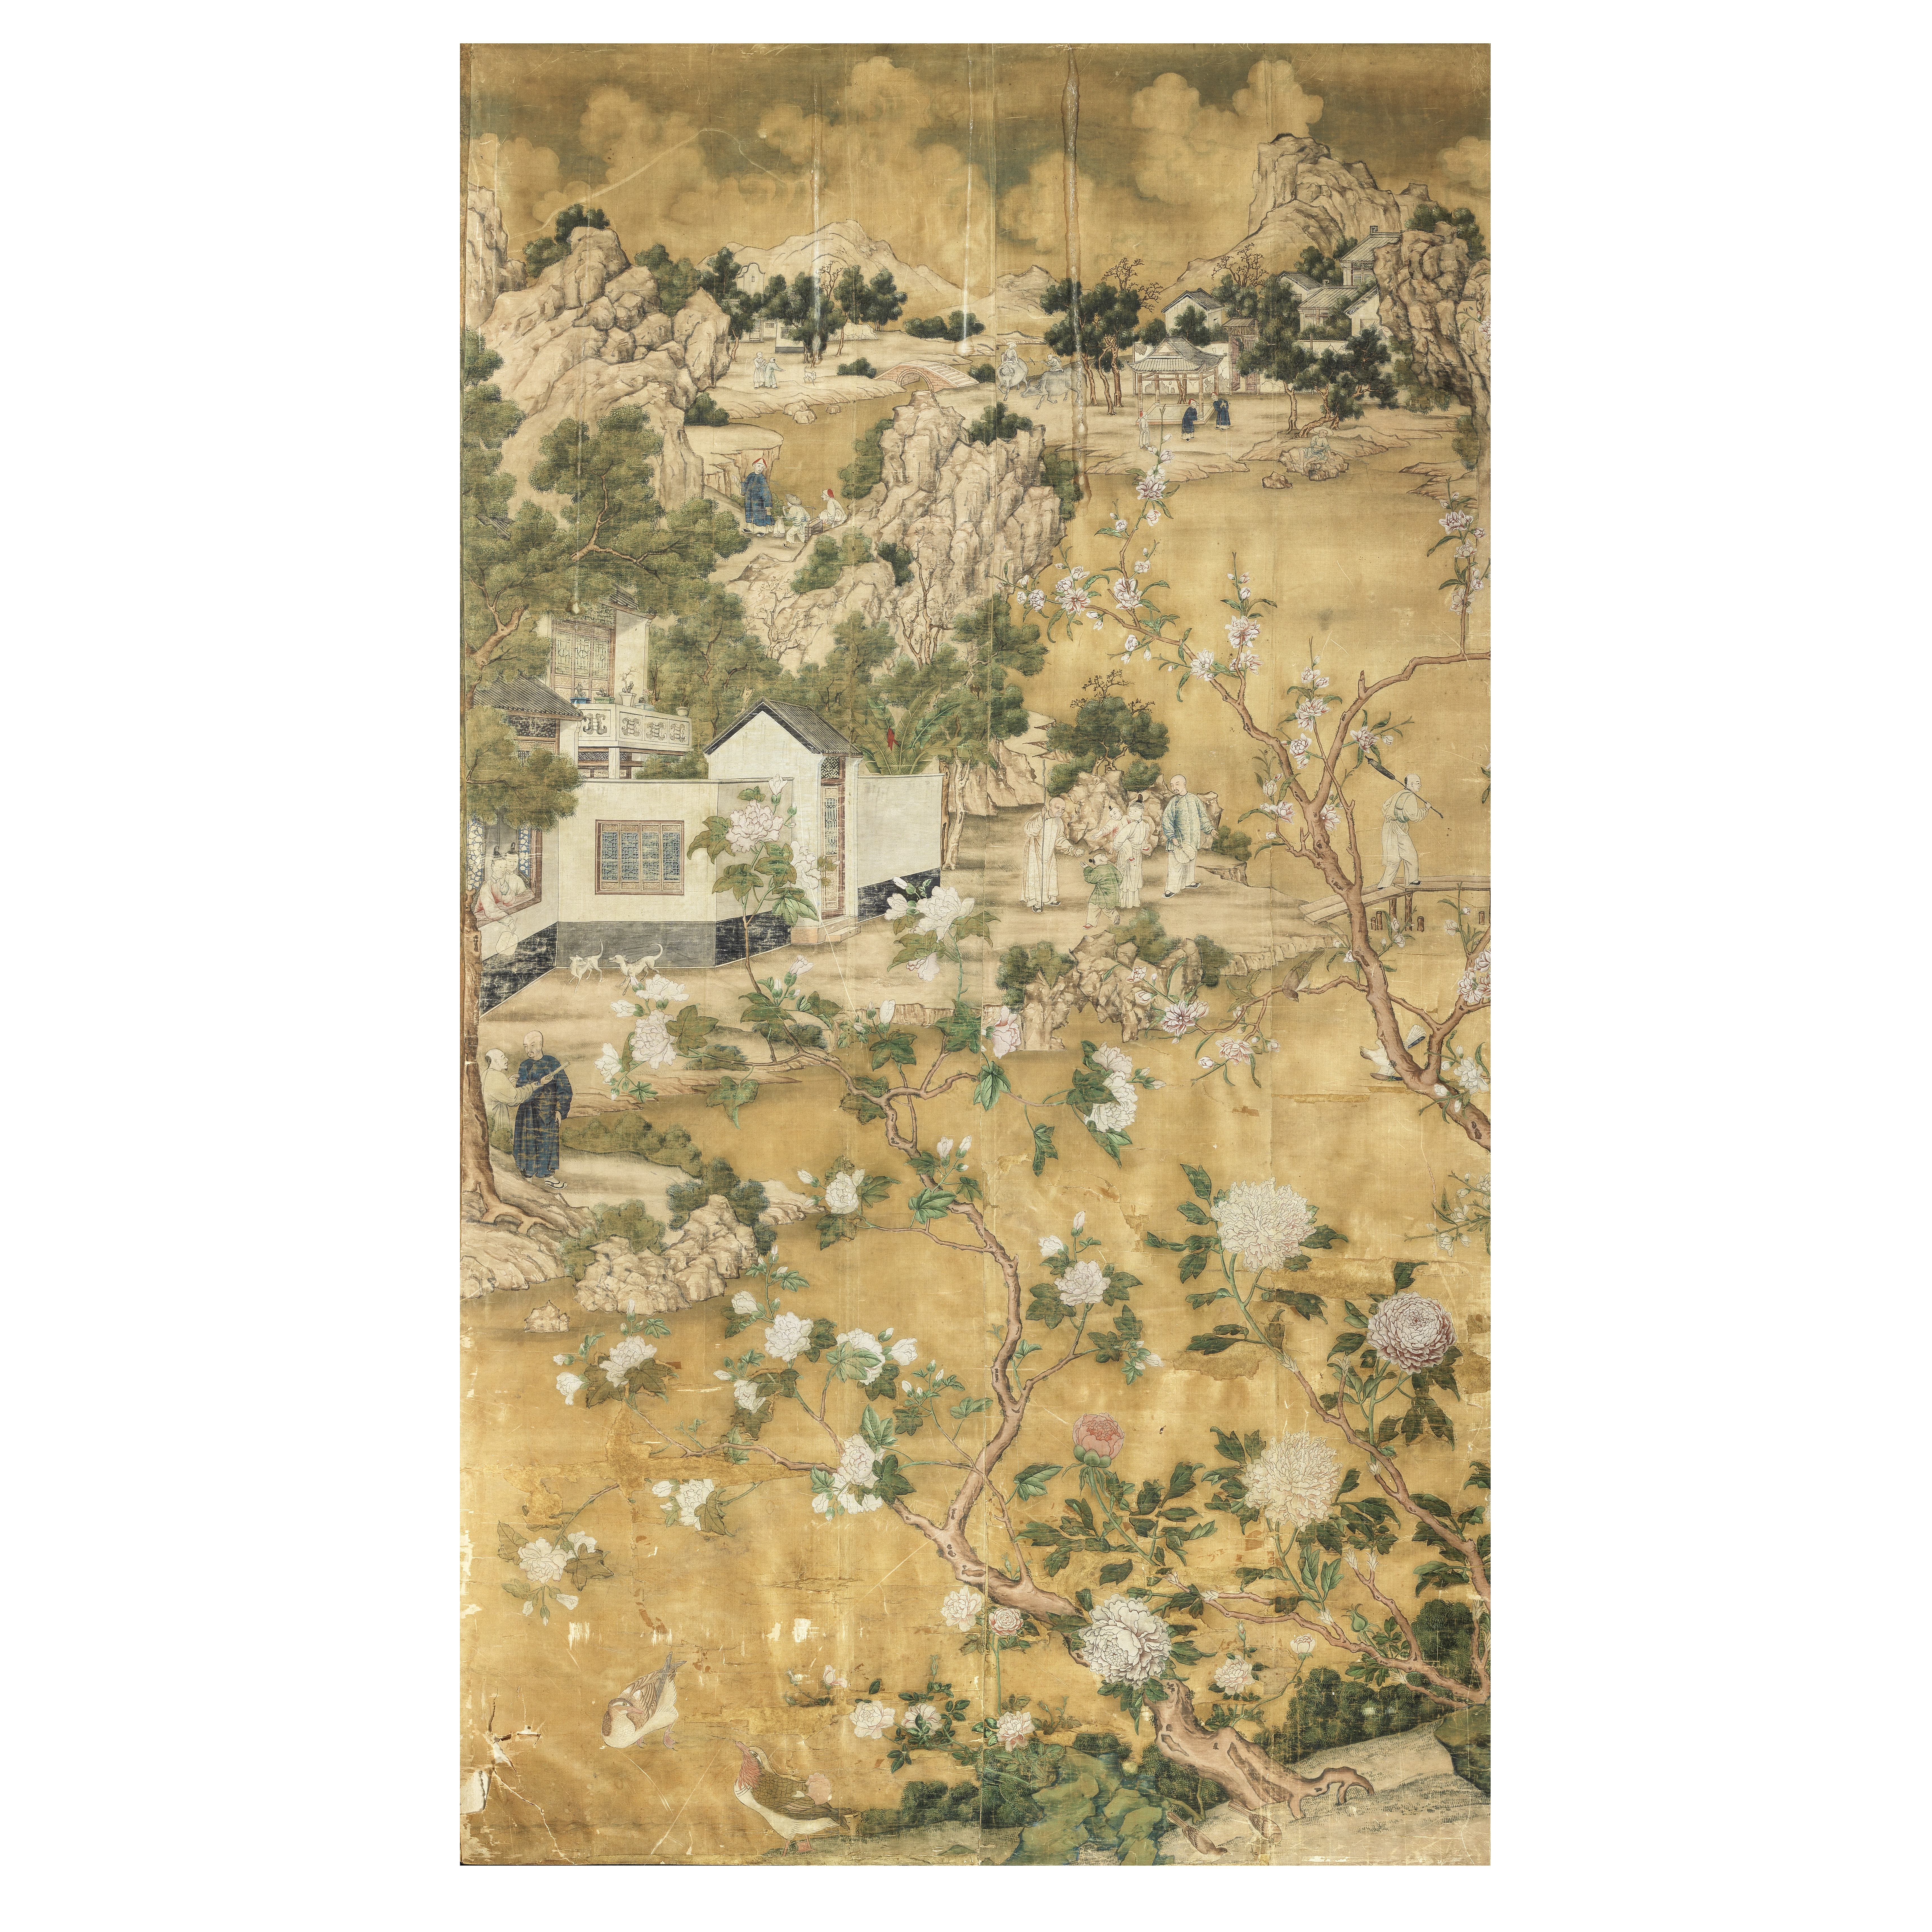 A CHINESE EXPORT WALLPAPER PANEL 18th century